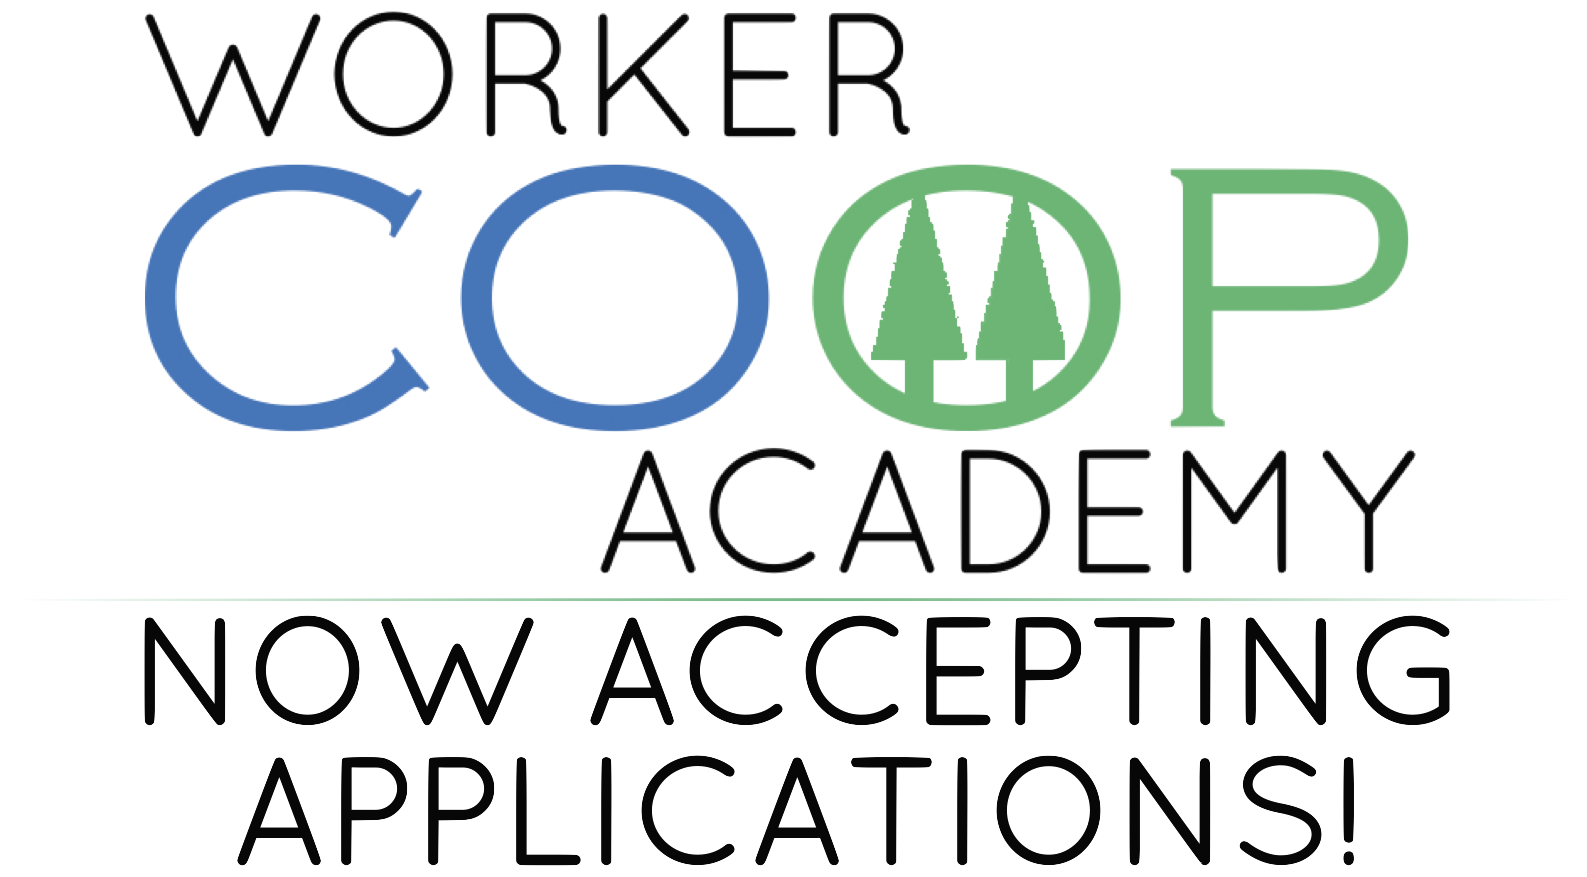 Worker Coop Academy: Now Accepting Applications